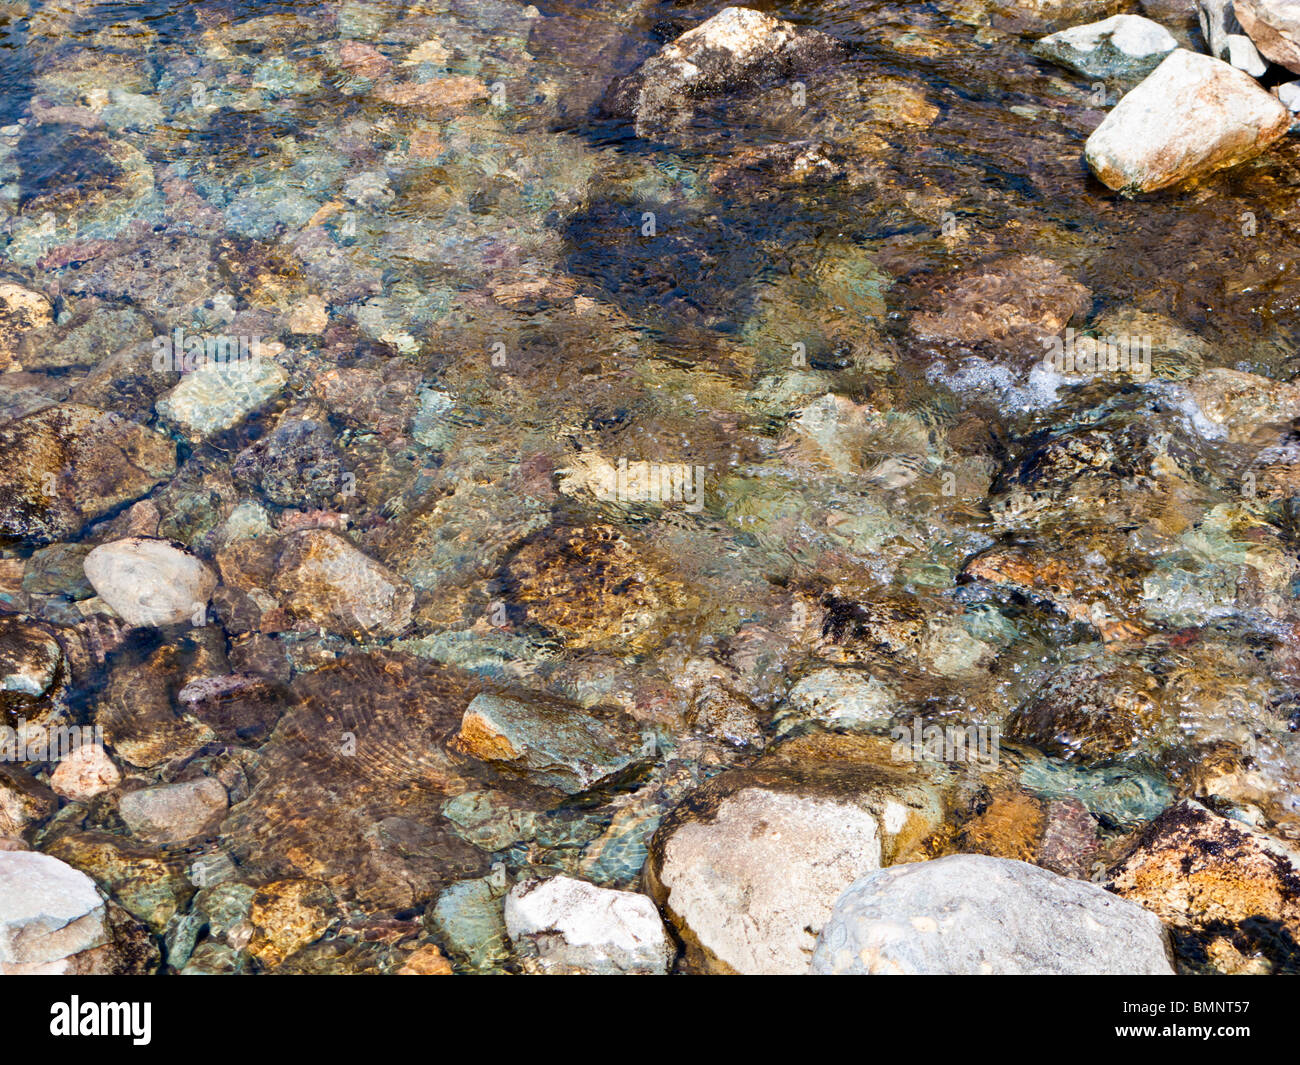 Pebbles in the water flowing in a stream close up overhead view - Stock Image